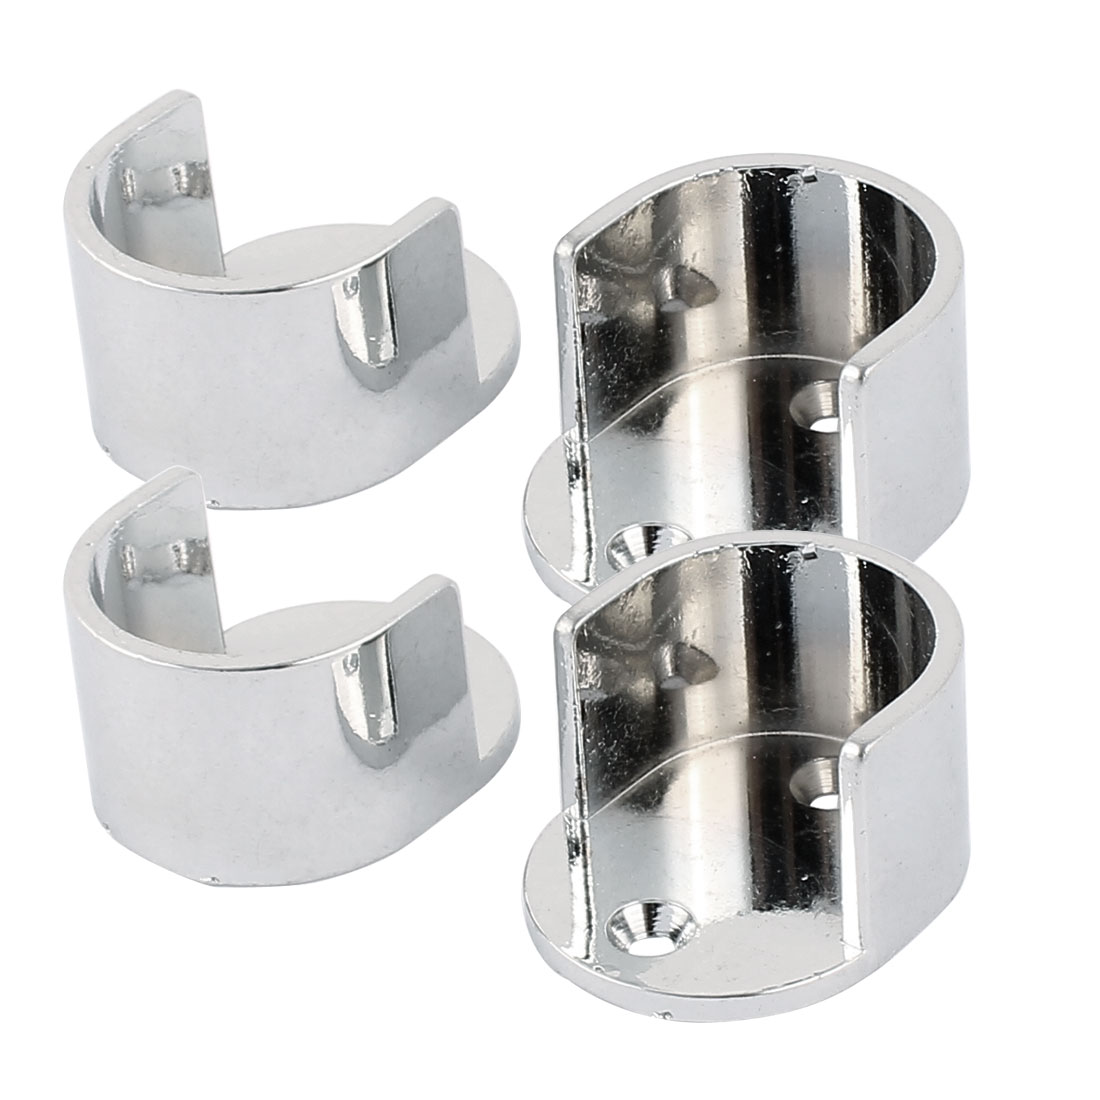 Wardrobe Closet Metal Round Rod Flange Holder Bracket 25mm Dia Silver Tone 4pcs